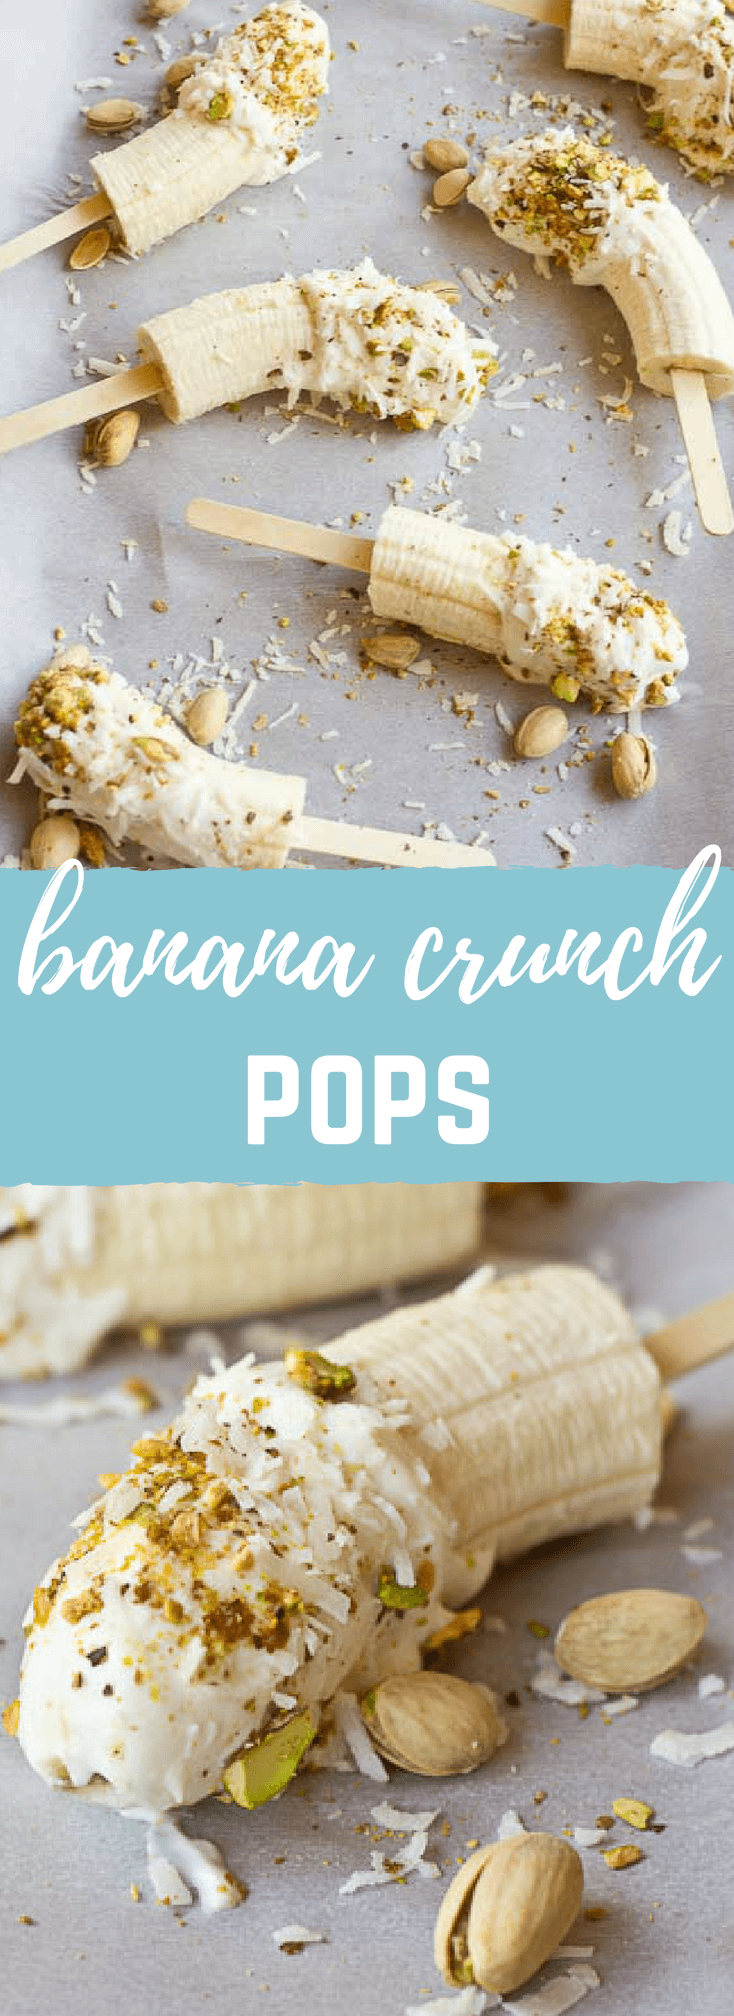 hese Banana Crunch Pops are just what you need on a hot summer day, kids and adults rejoice! Only 4 ingredients and very simple to make! Place banana on stick, dunk in Greek yogurt and roll in pistachios and shredded coconut and freeze.